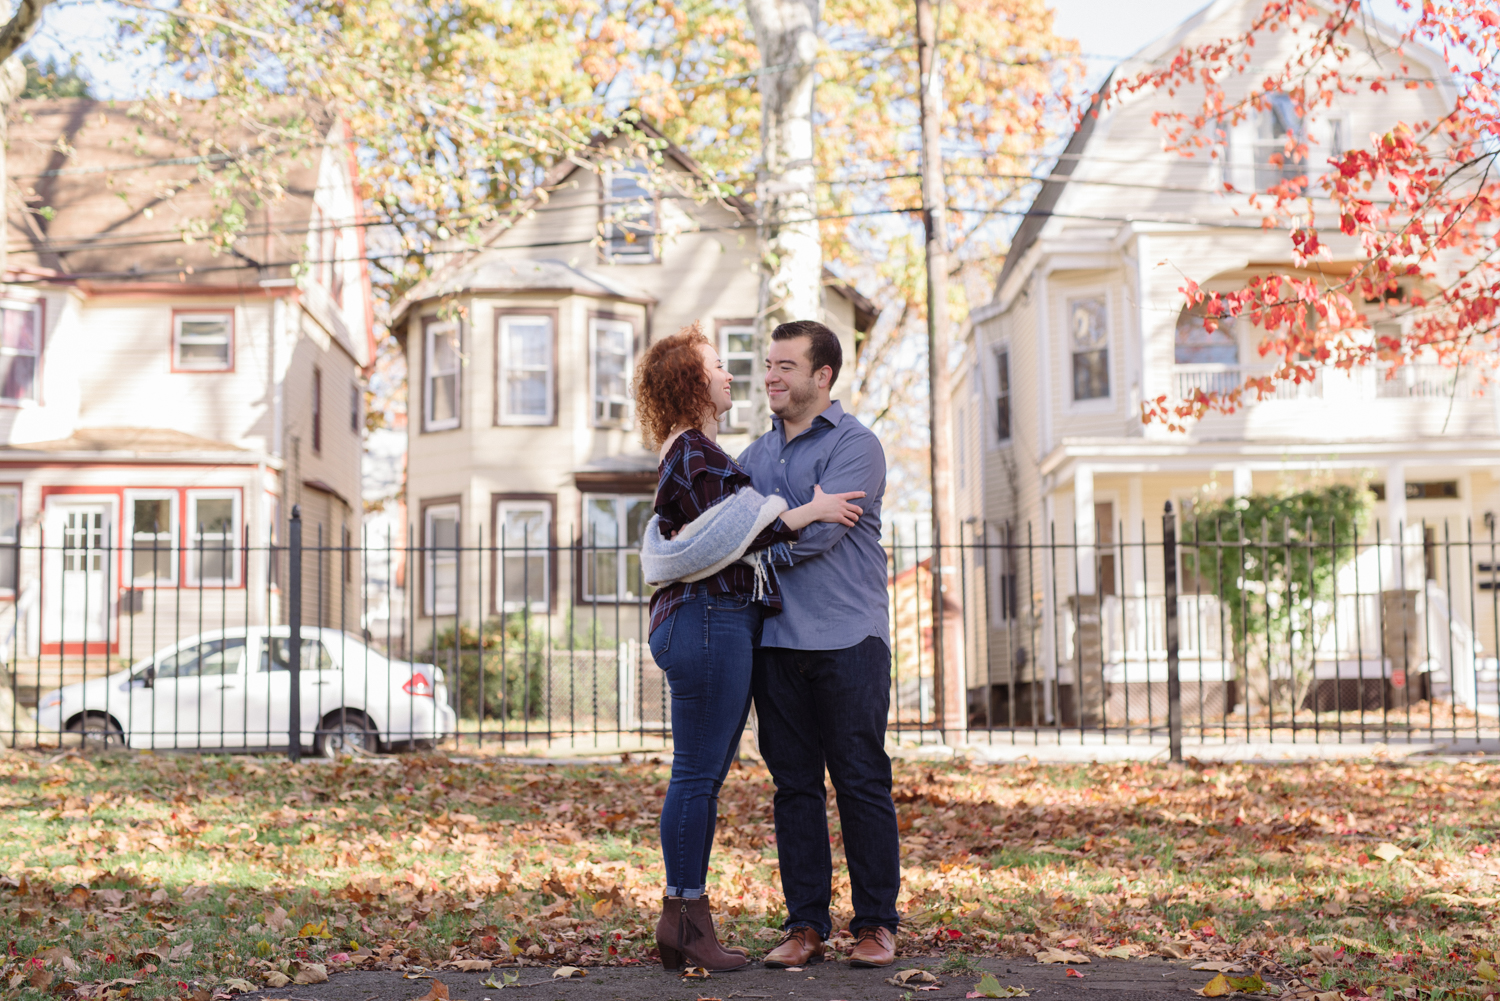 Melissa+Kenny- Watsessing Park Fall Engagement Session- Bloomfield New Jersey- Olivia Christina Photo-64.JPG